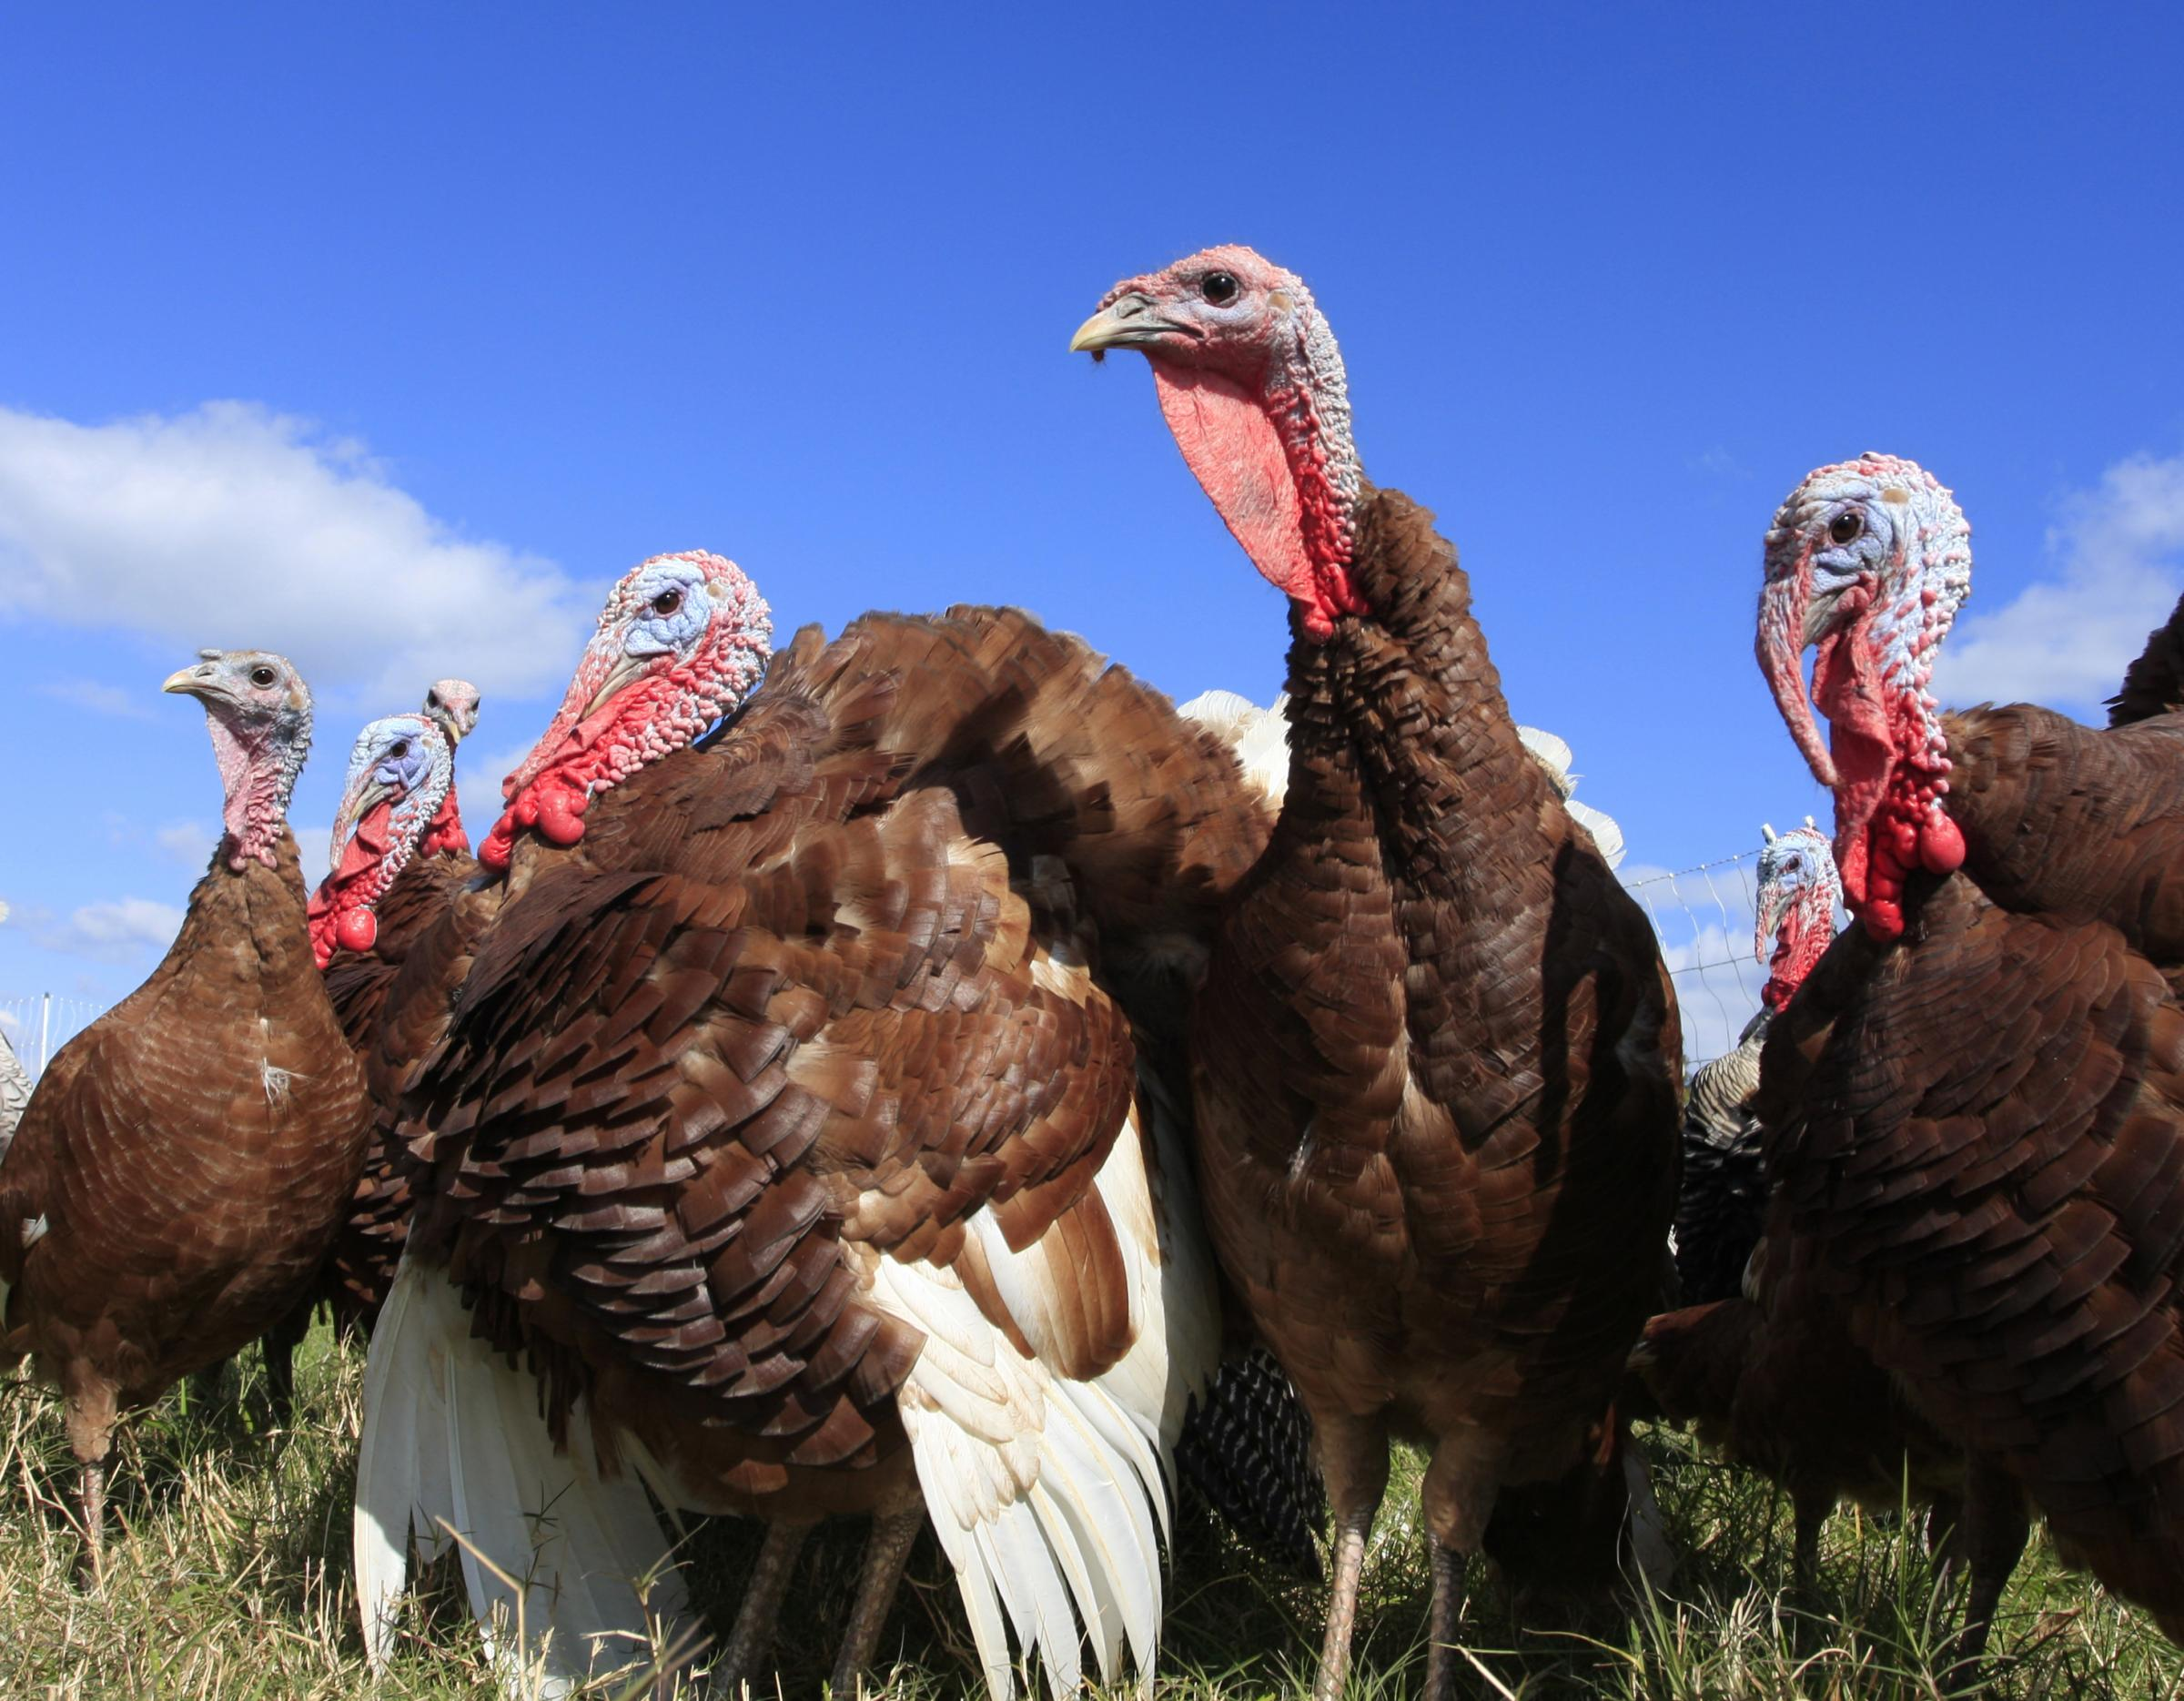 Buy higher welfare locally reared birds this Christmas says NFU